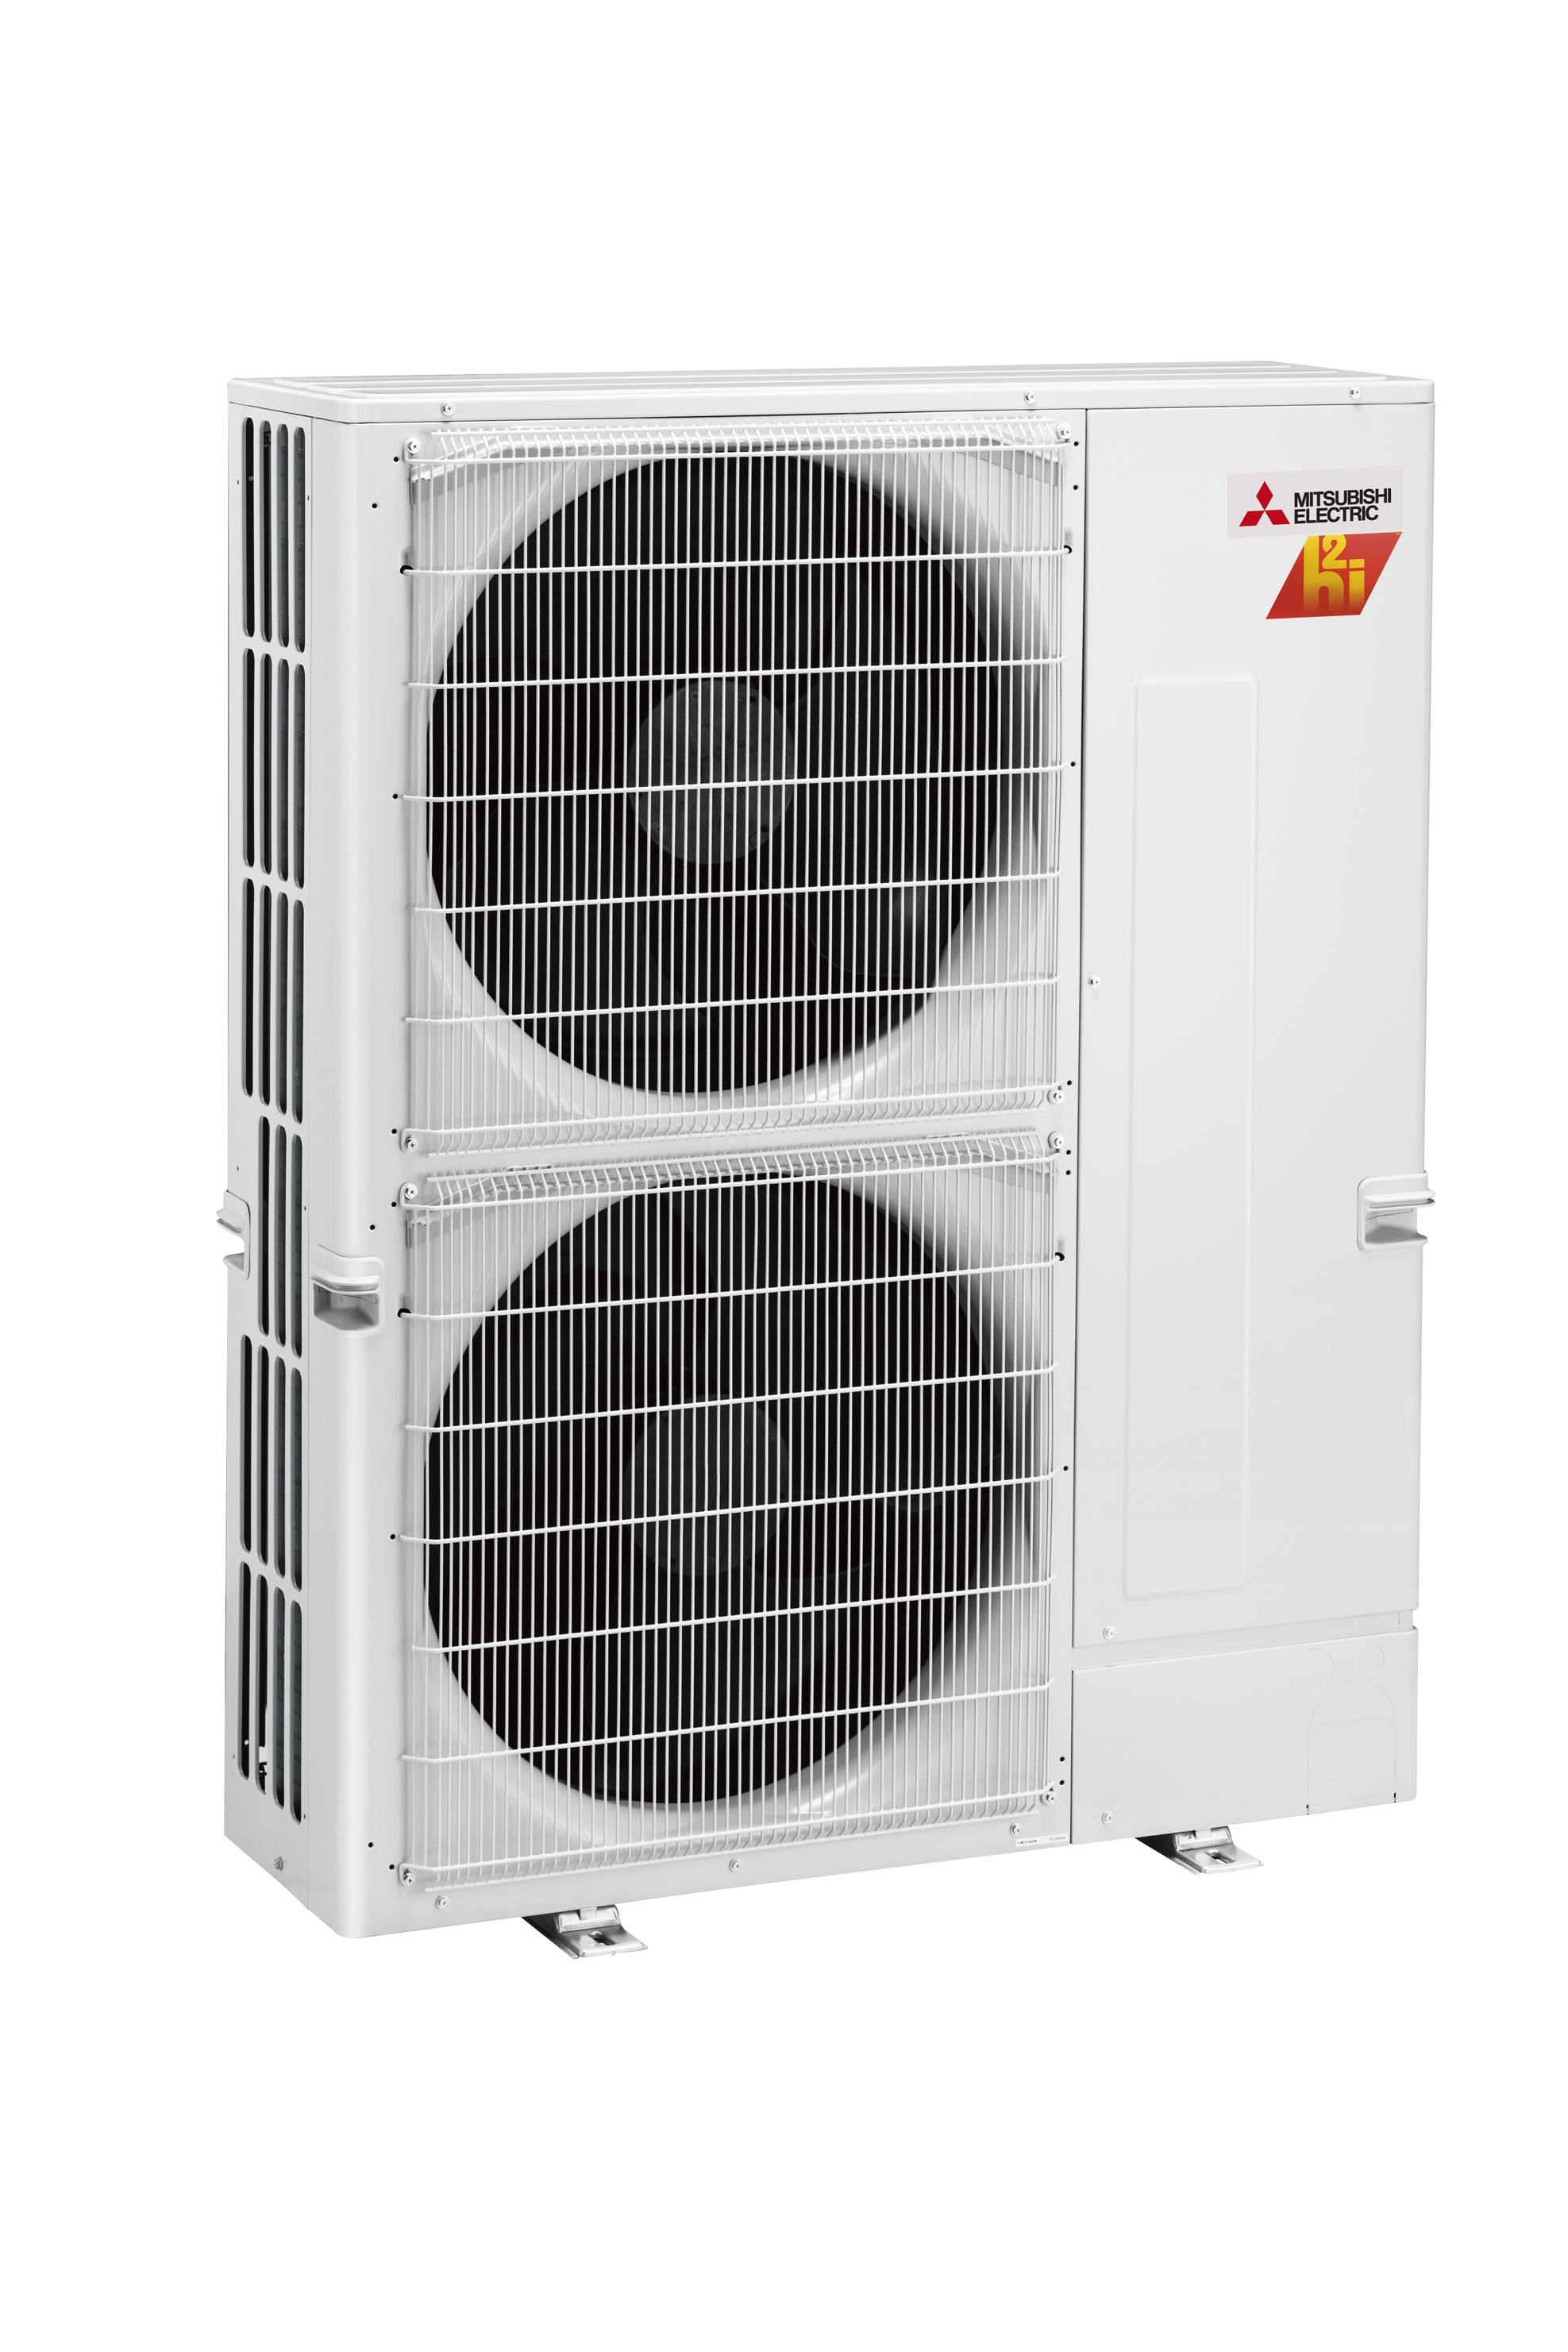 commercial cooling equipment electric heating and light case pumps richair ductless installed studies in heat systems application img mitsubishi